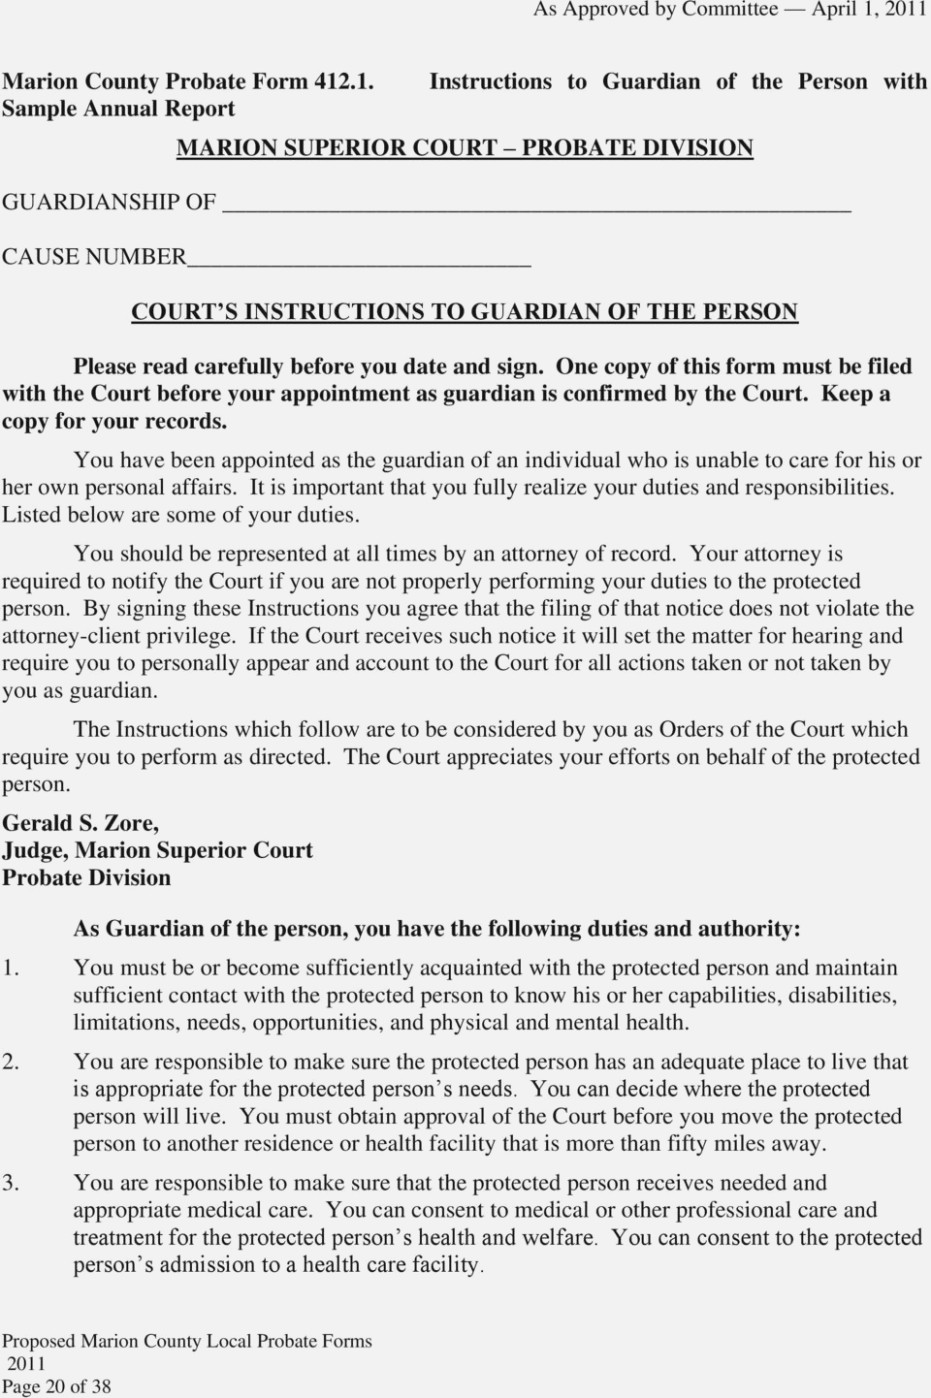 Marion County Probate Court Forms